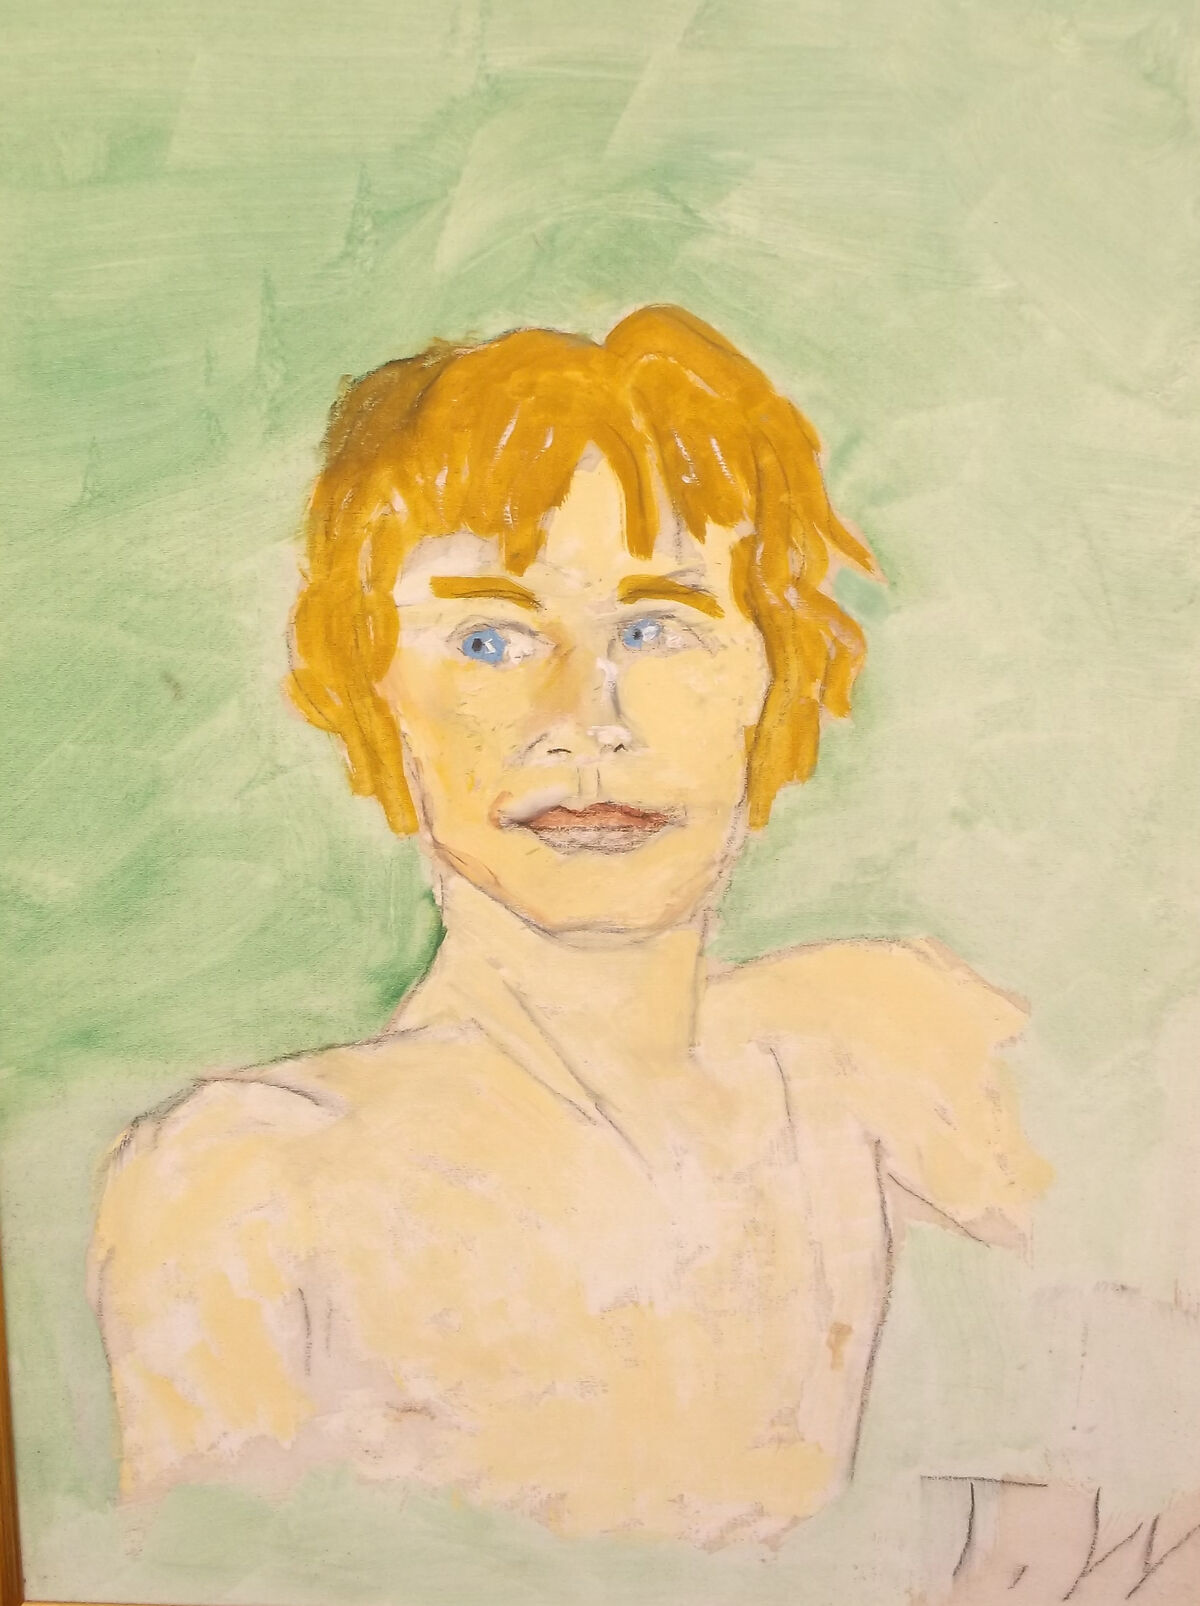 Tennessee Williams, Michael York, 1970s. On loan from David Wolkowsky. Courtesy of The Jewish Museum of Florida-FIU.